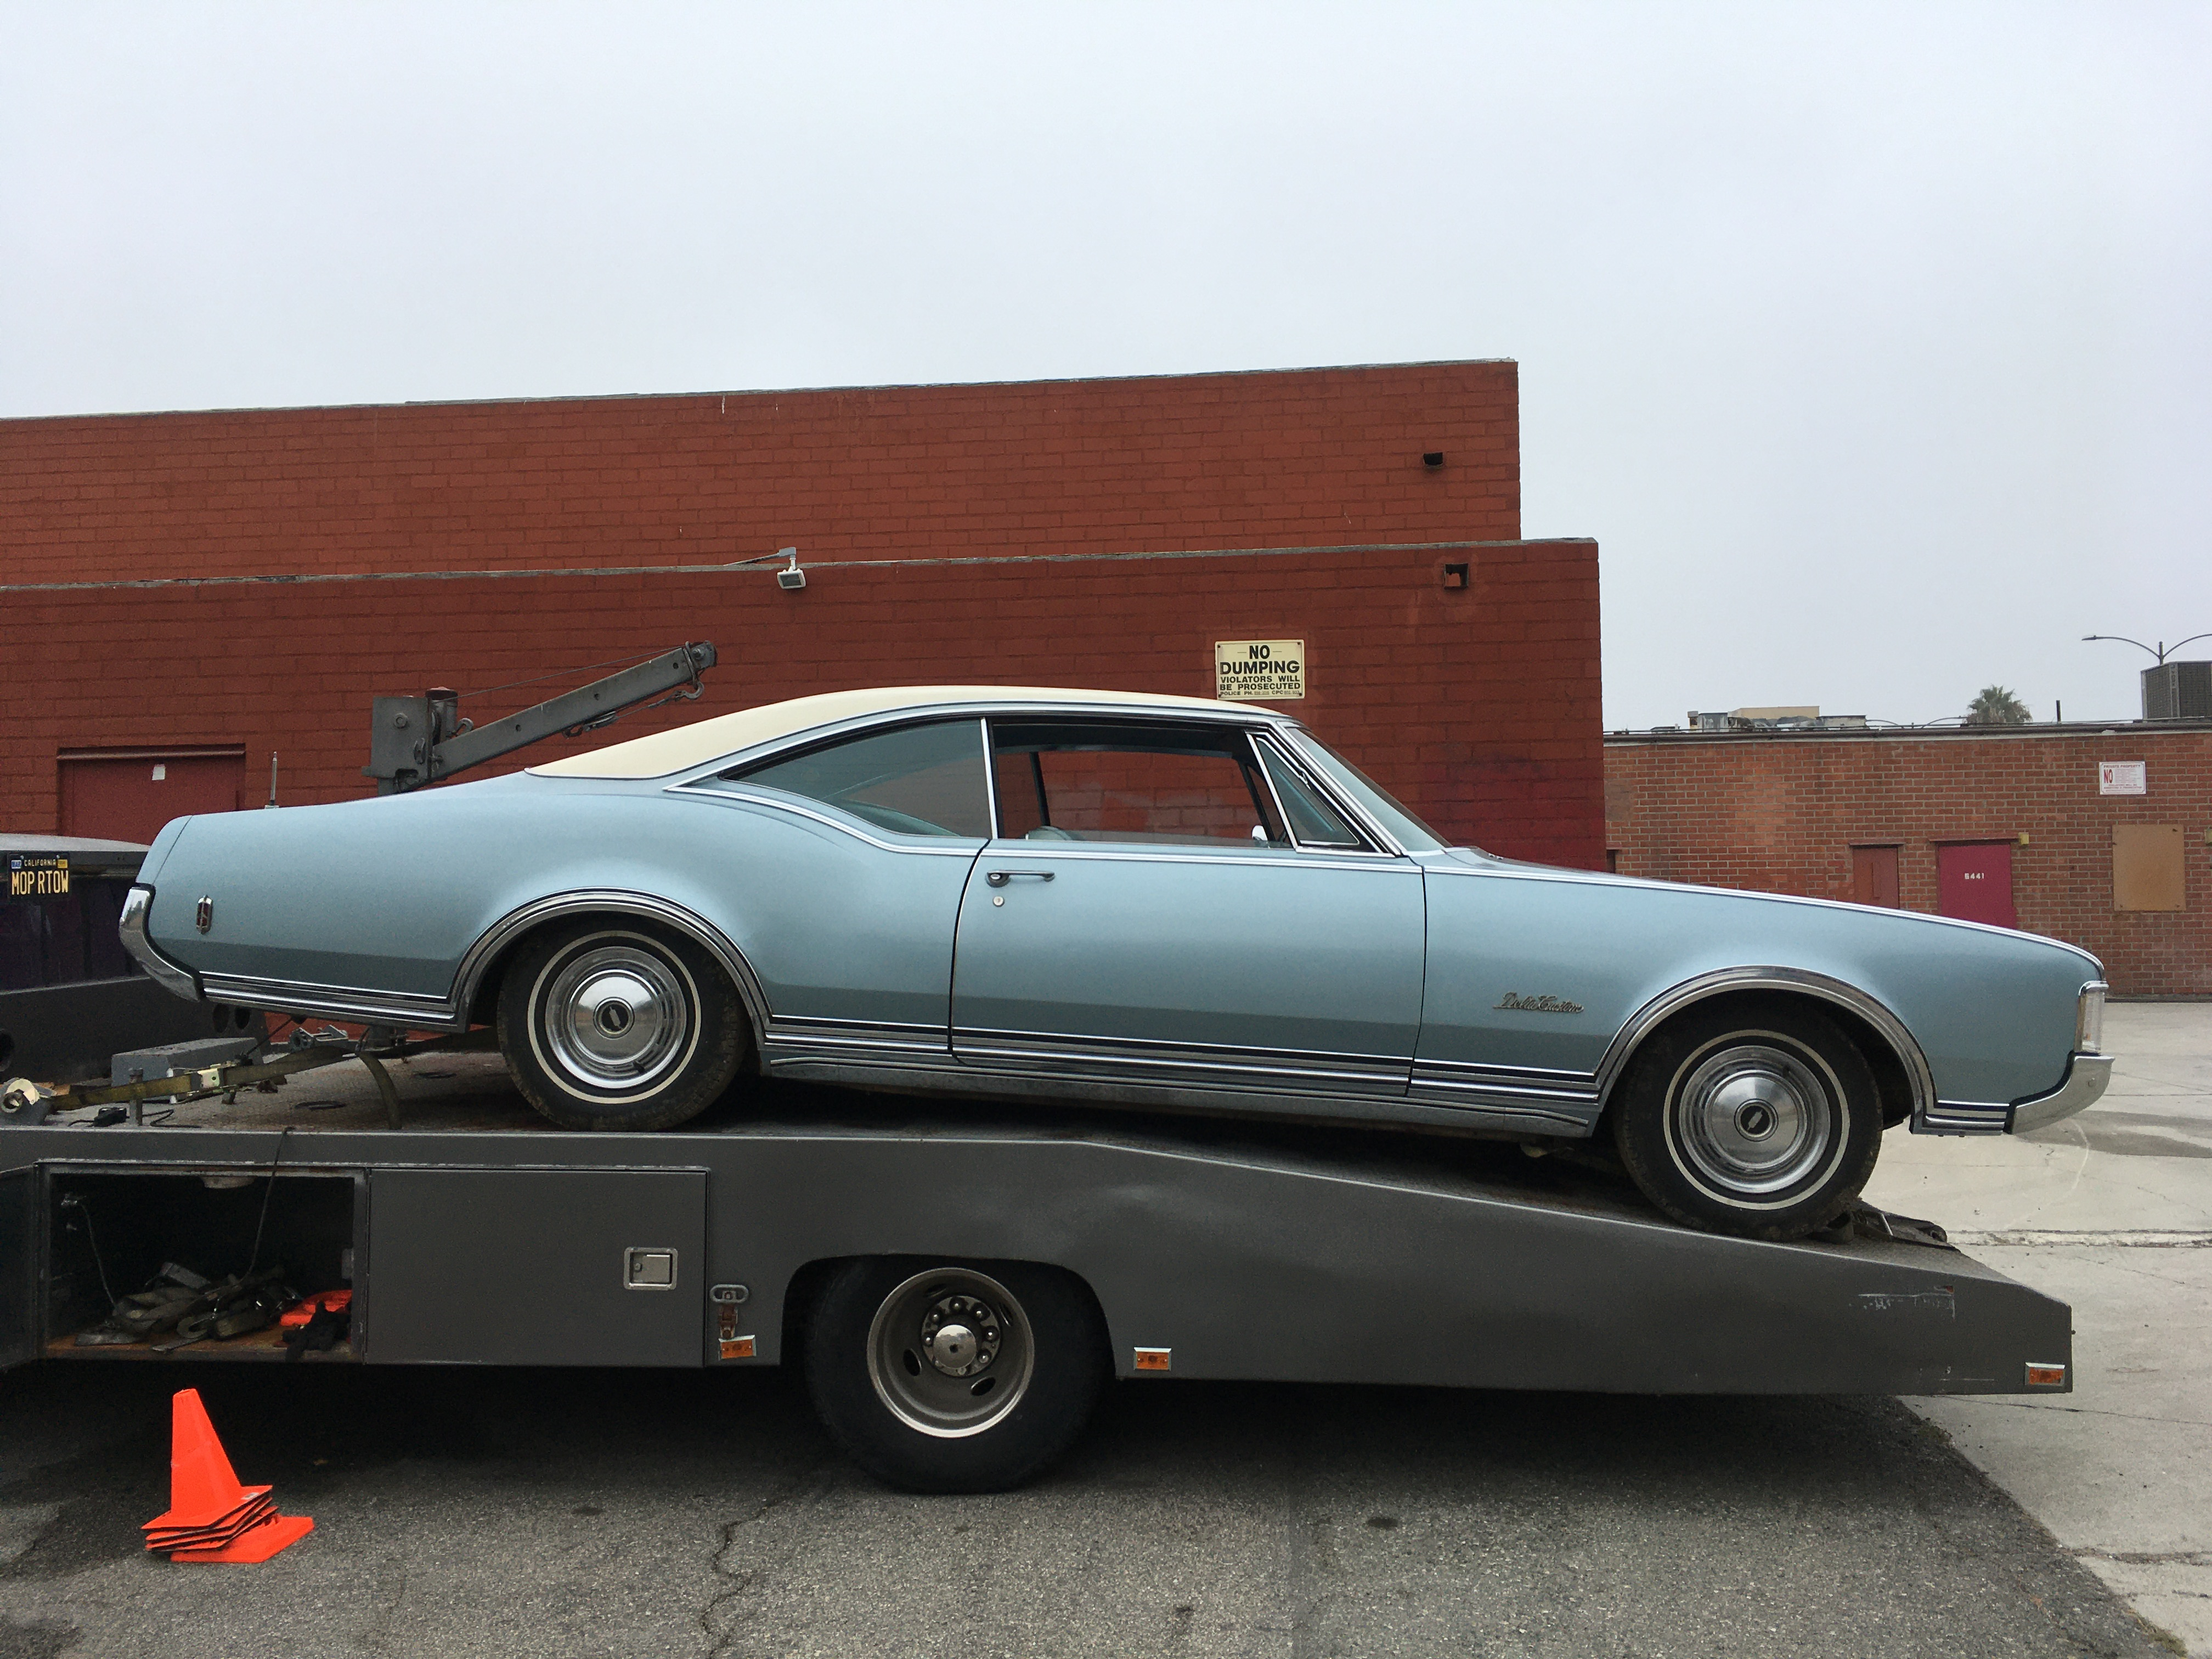 1968 Oldsmobile Delta88 Custom Holiday Coupe